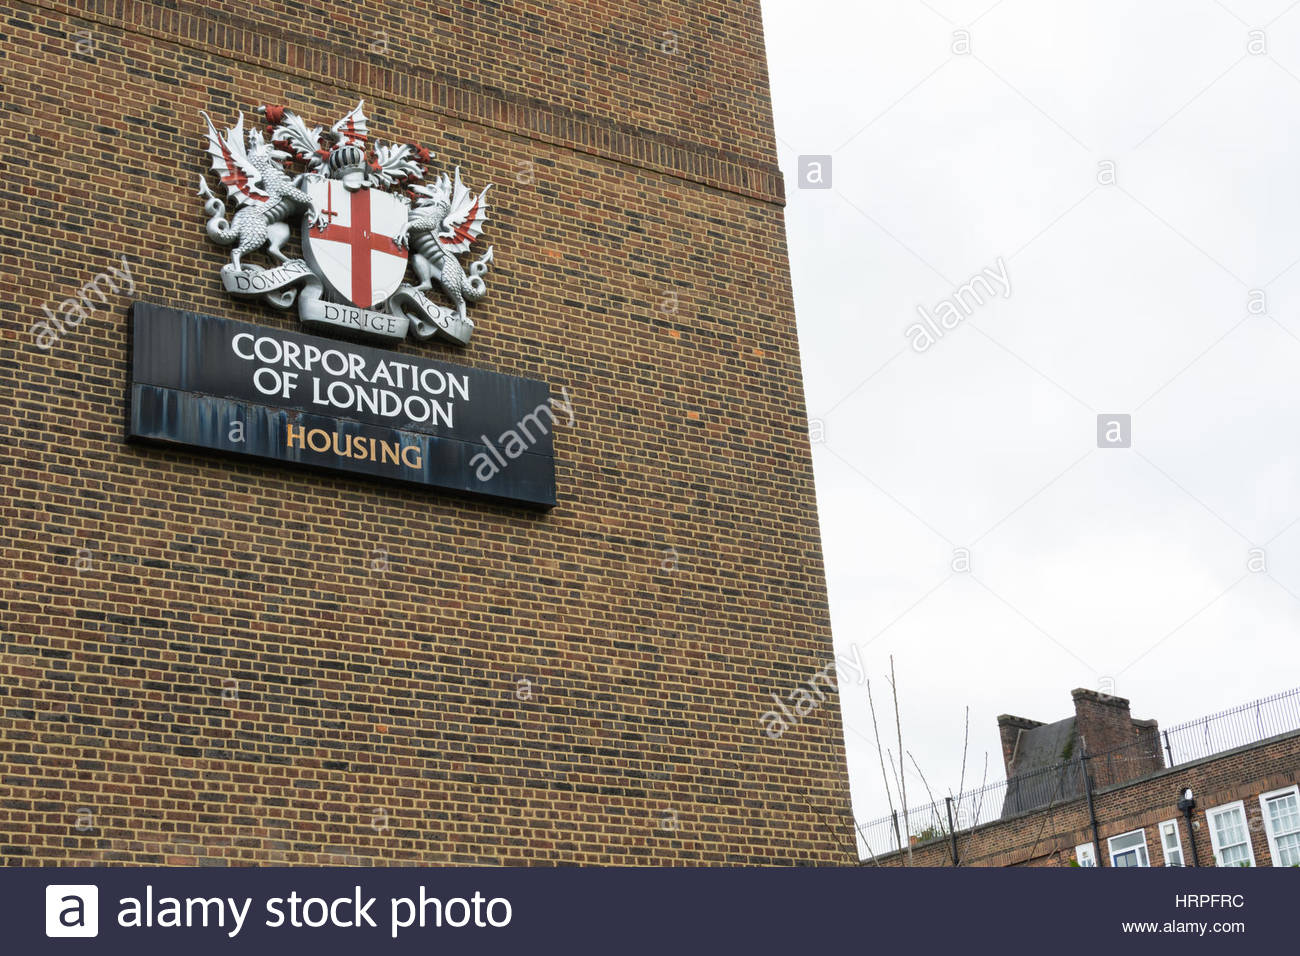 The Corporation of London Coat of Arms on the side of a building in Southwark, London, UK - Stock Image